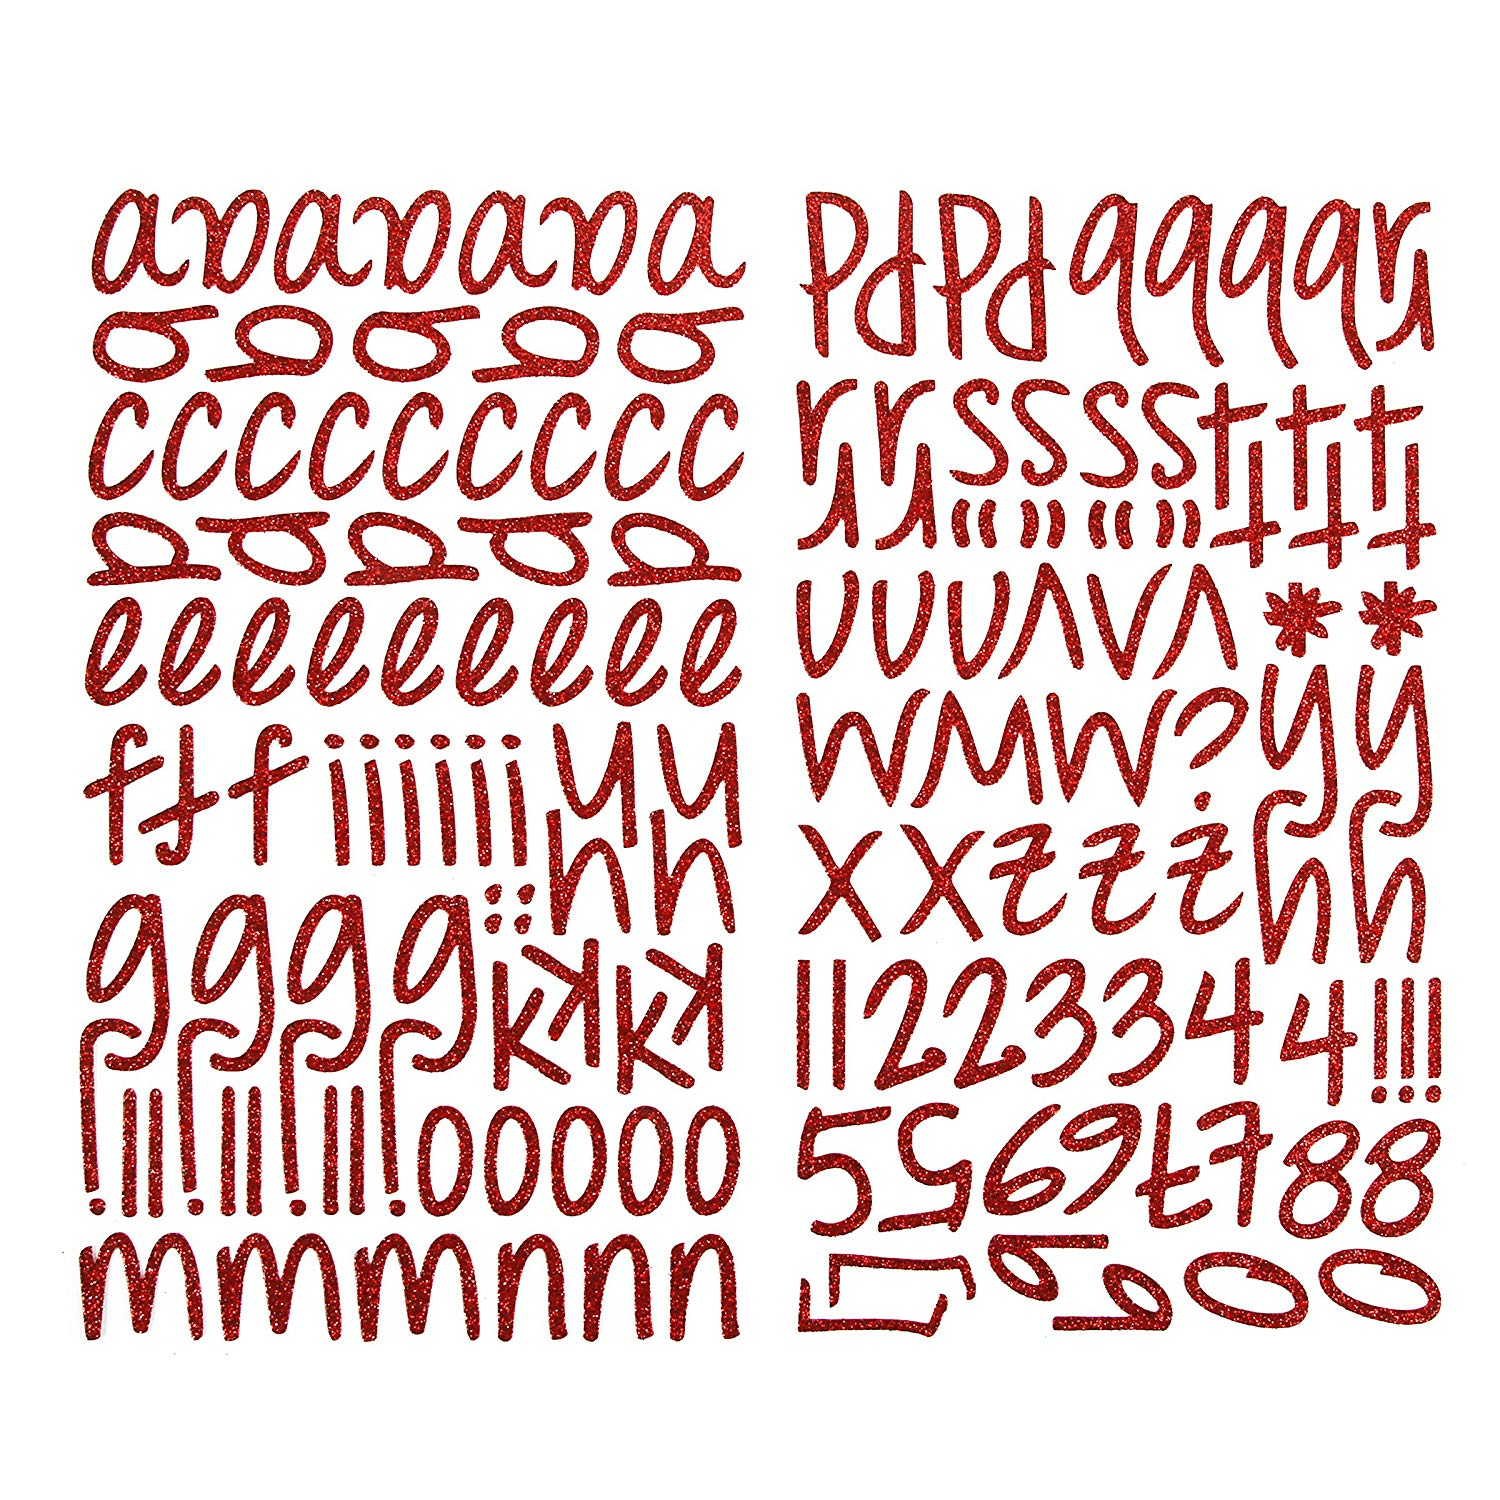 Darice 1219 55 159 piece glitter alphabet sticker lower case letters and numbers